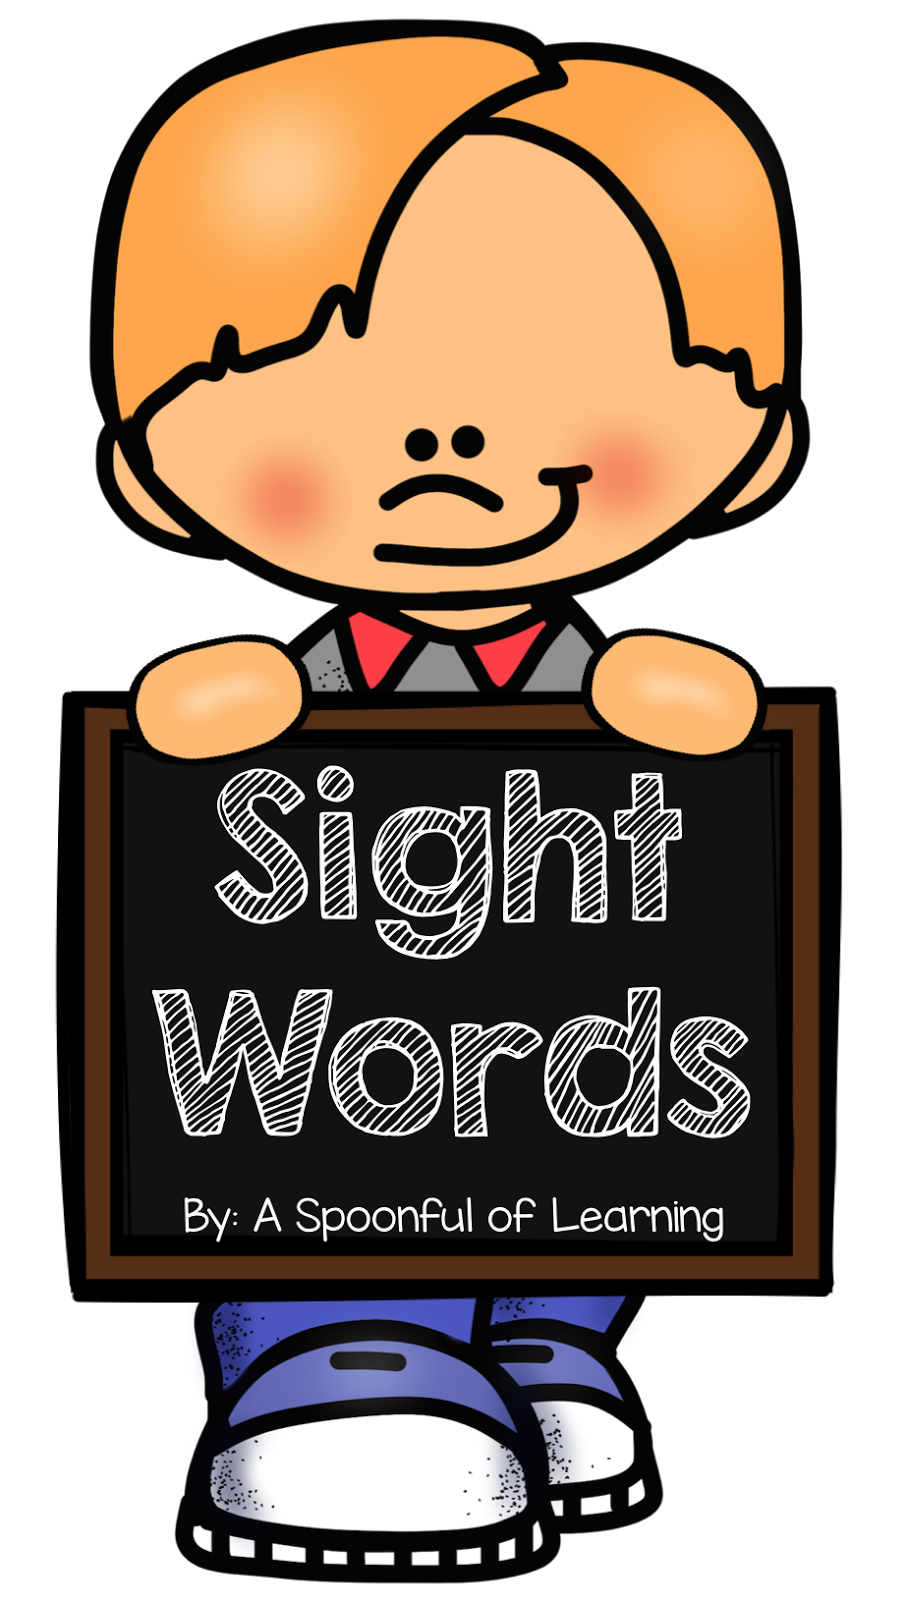 Sight Words Clip Art - Centers clipart sight word, Centers sight word Transparent FREE ...